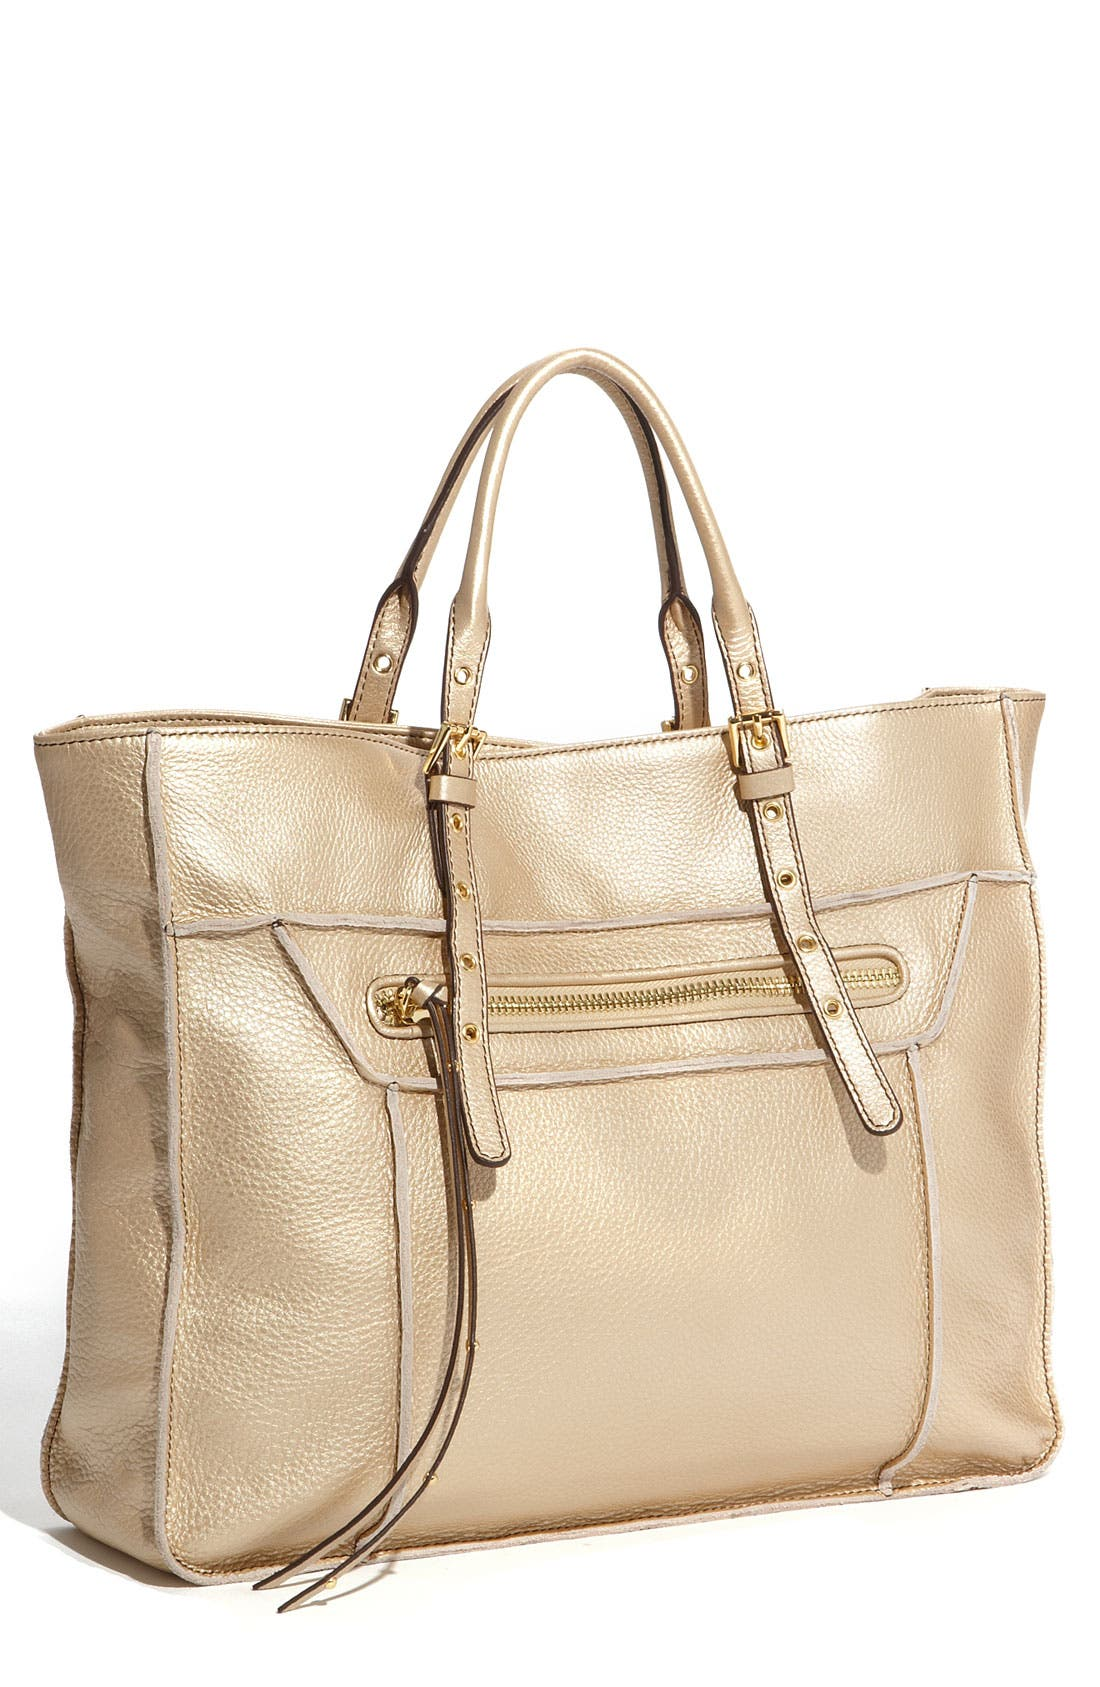 Alternate Image 1 Selected - Steven by Steve Madden 'France' Leather Tote